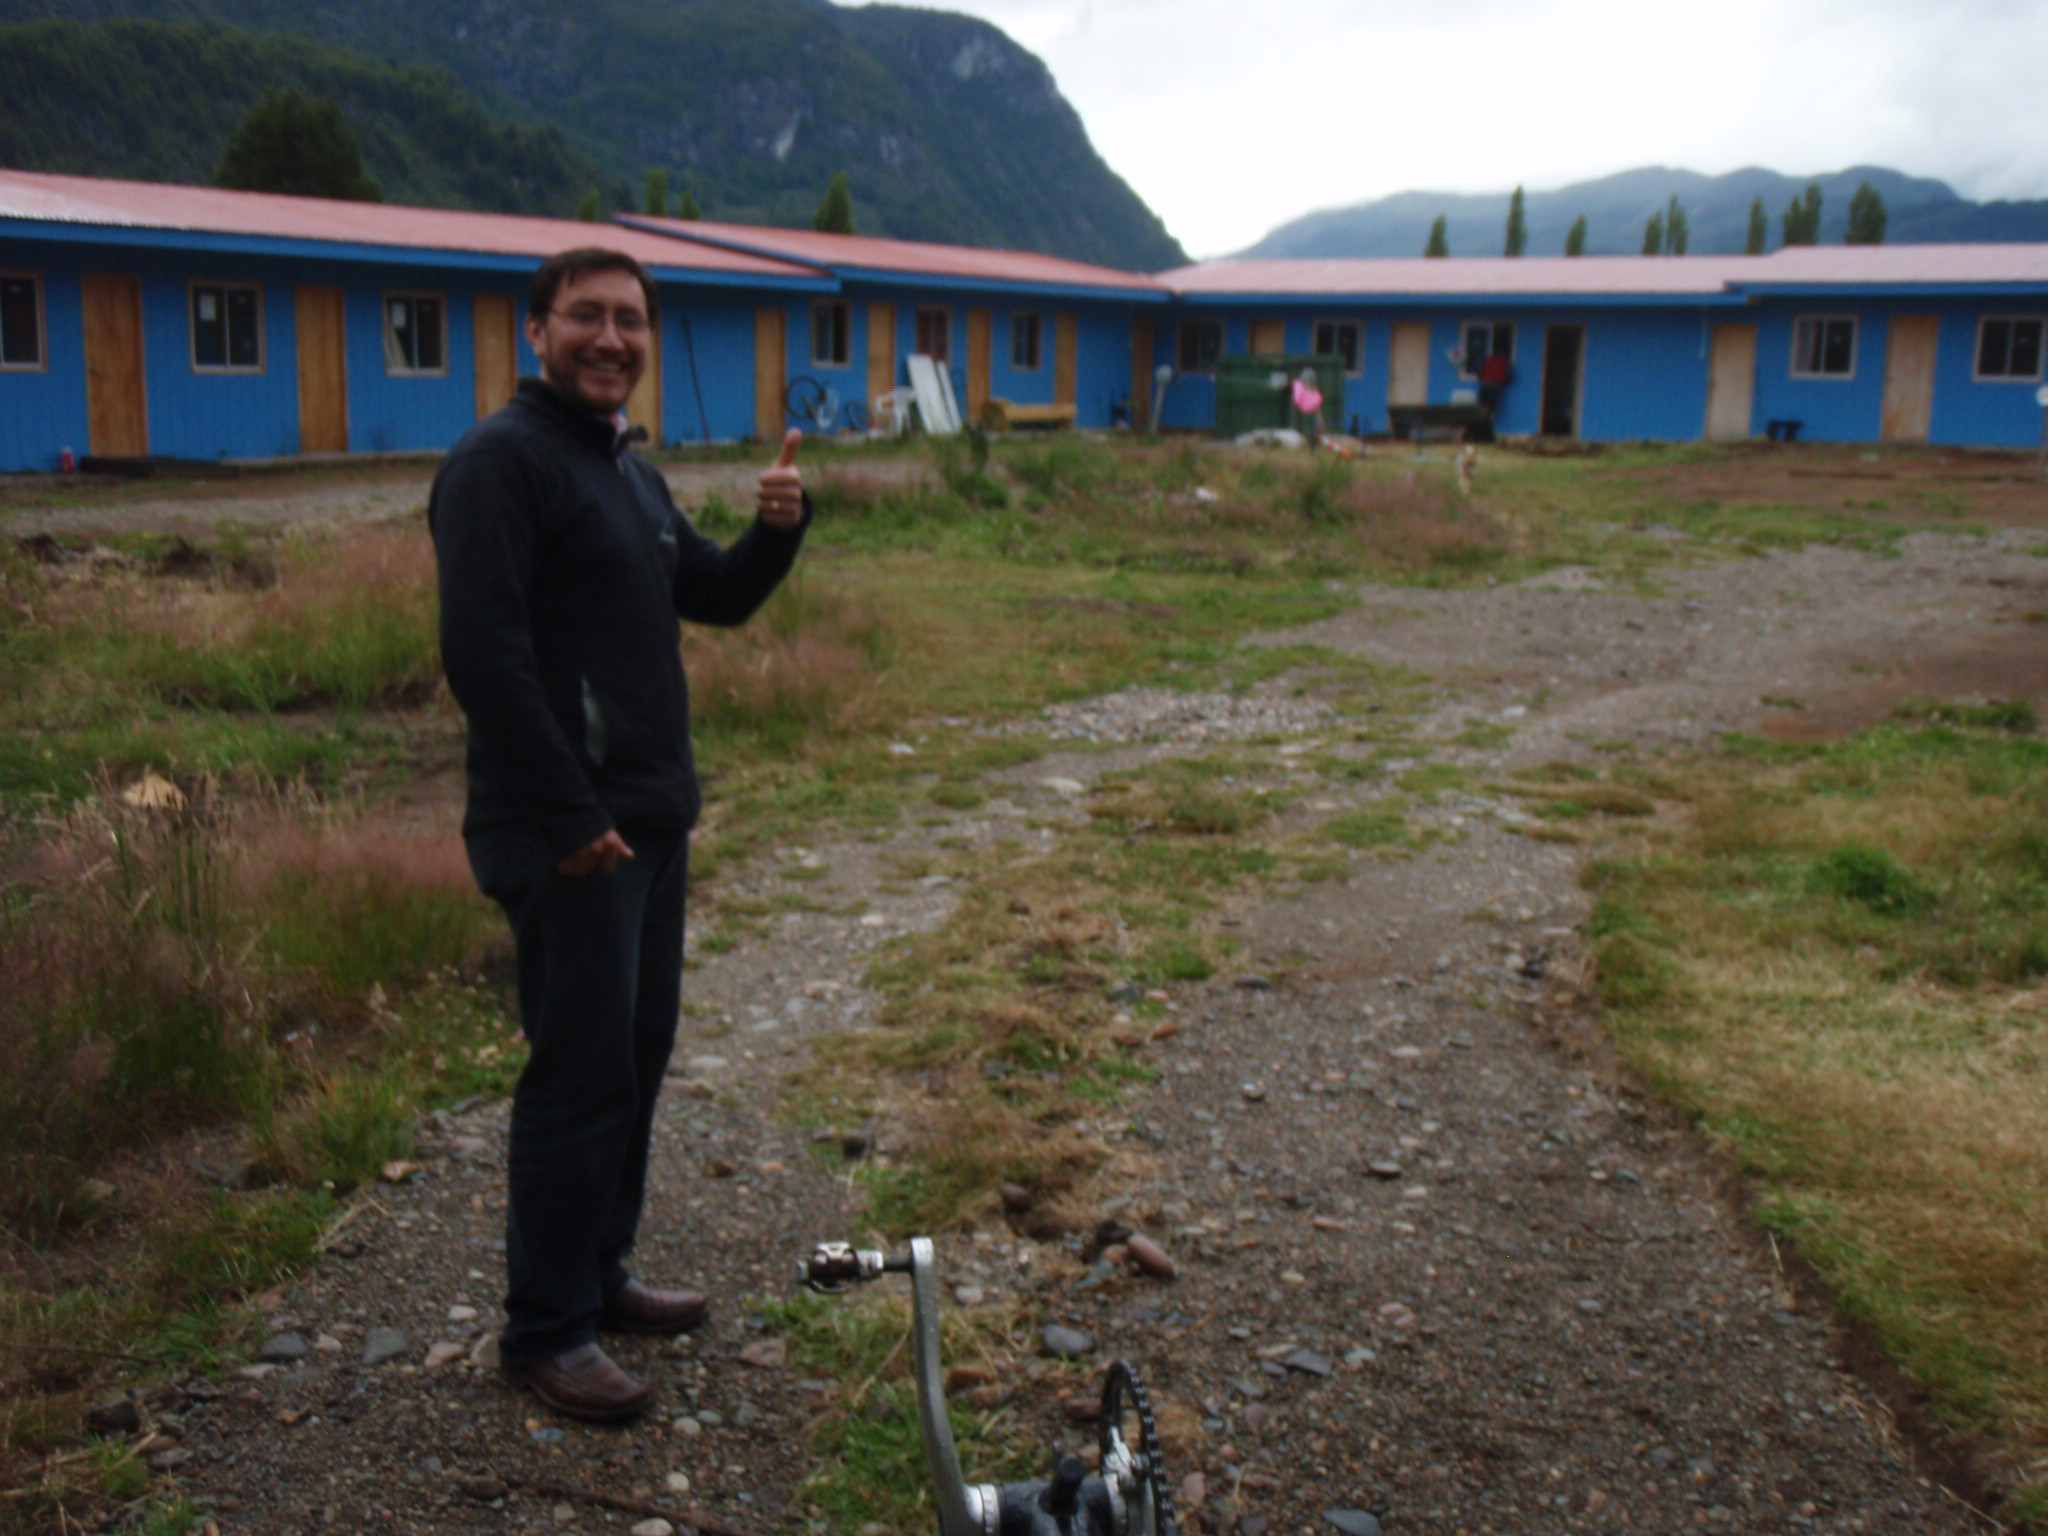 Friendly Chilean cyclist aficionado Jorge and his casa de ciclista